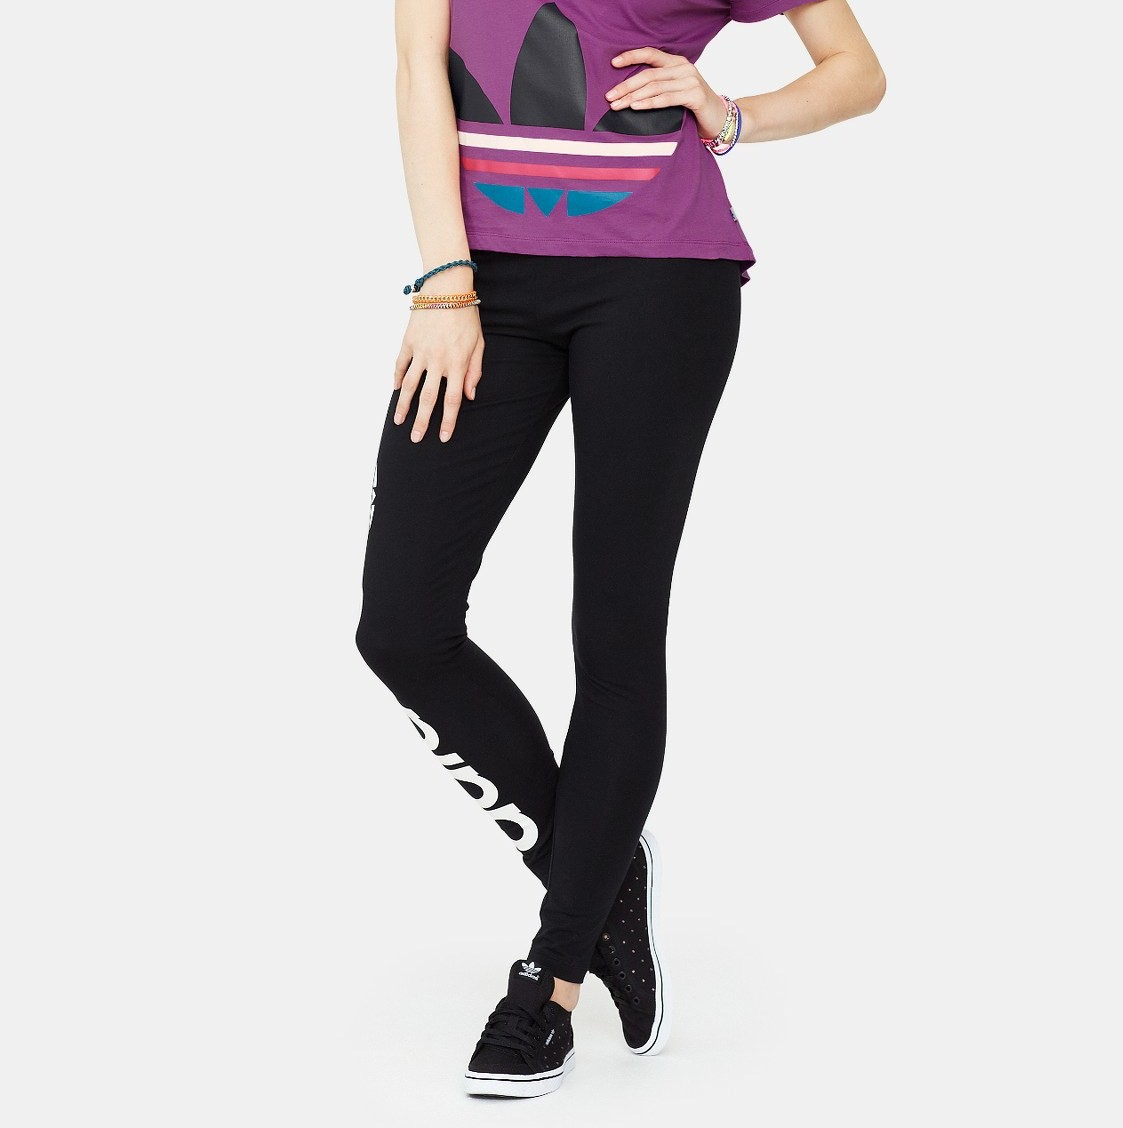 Buy adidas Originals Trefoil Leggings productions Adidas